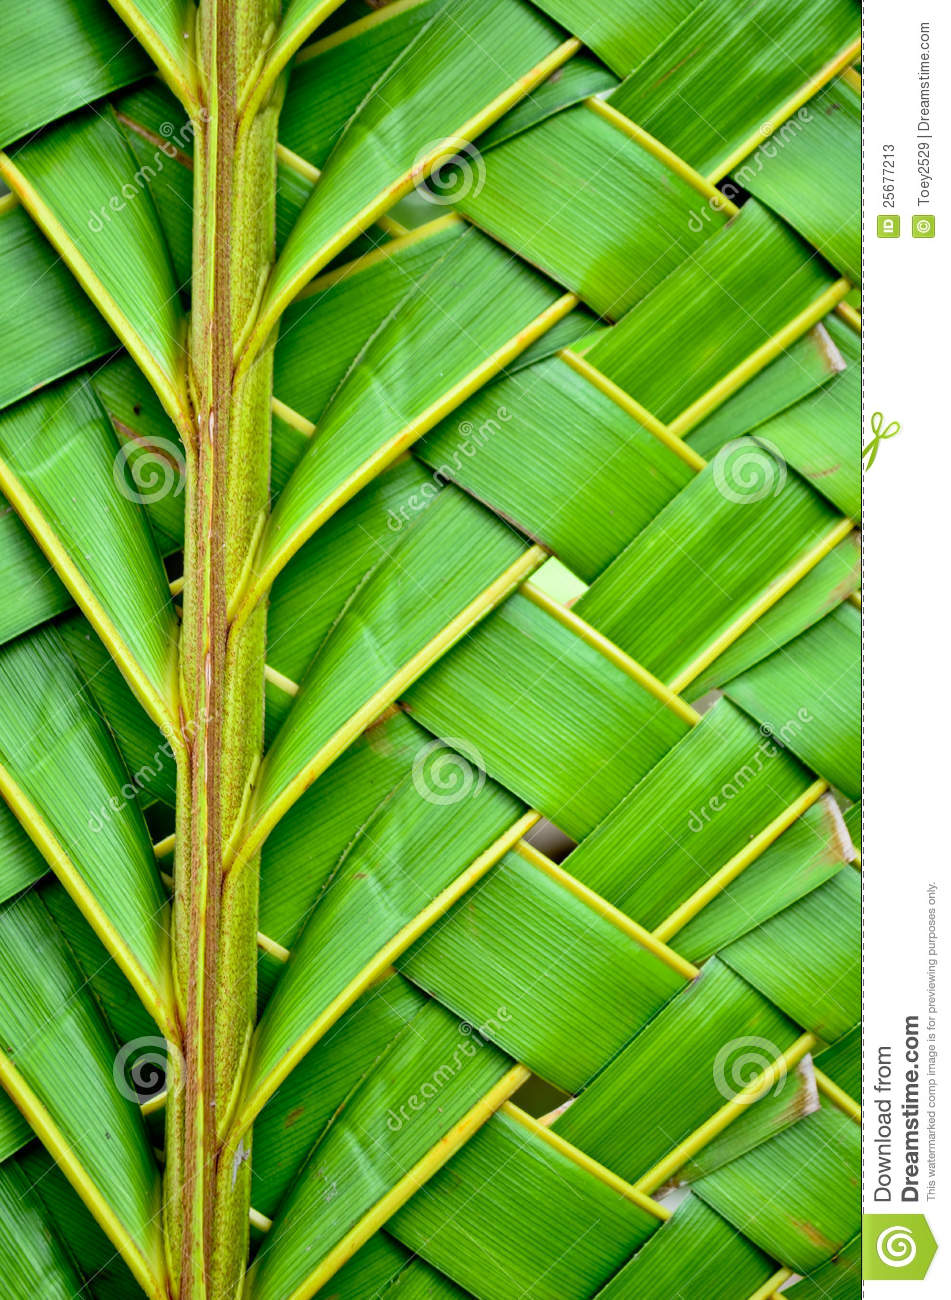 How To Weave A Coconut Leaf Basket : Weaving coconut leaves texture stock image